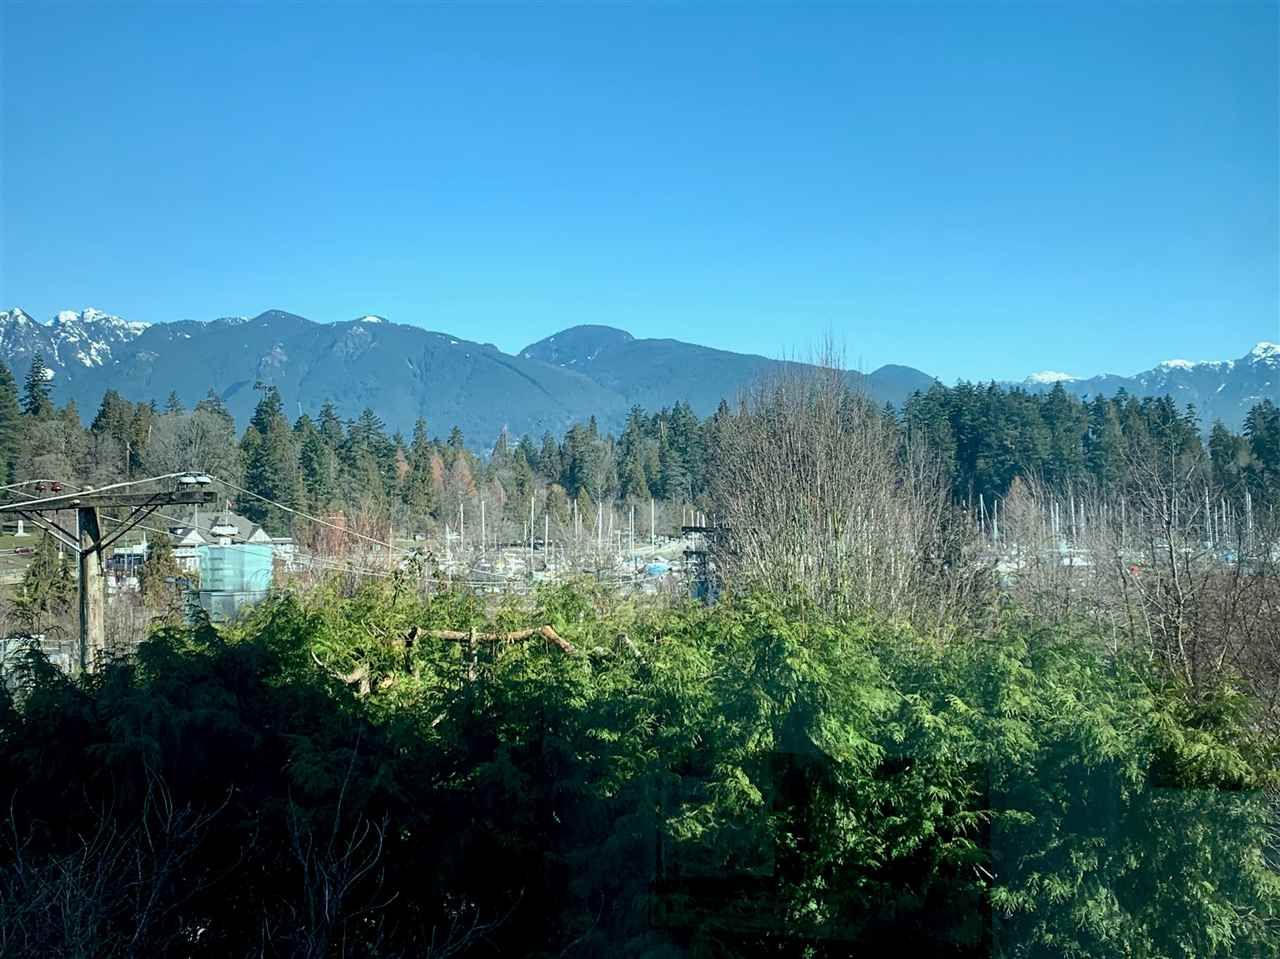 Main Photo: 403 1888 ALBERNI STREET in Vancouver: West End VW Condo for sale (Vancouver West)  : MLS®# R2465754